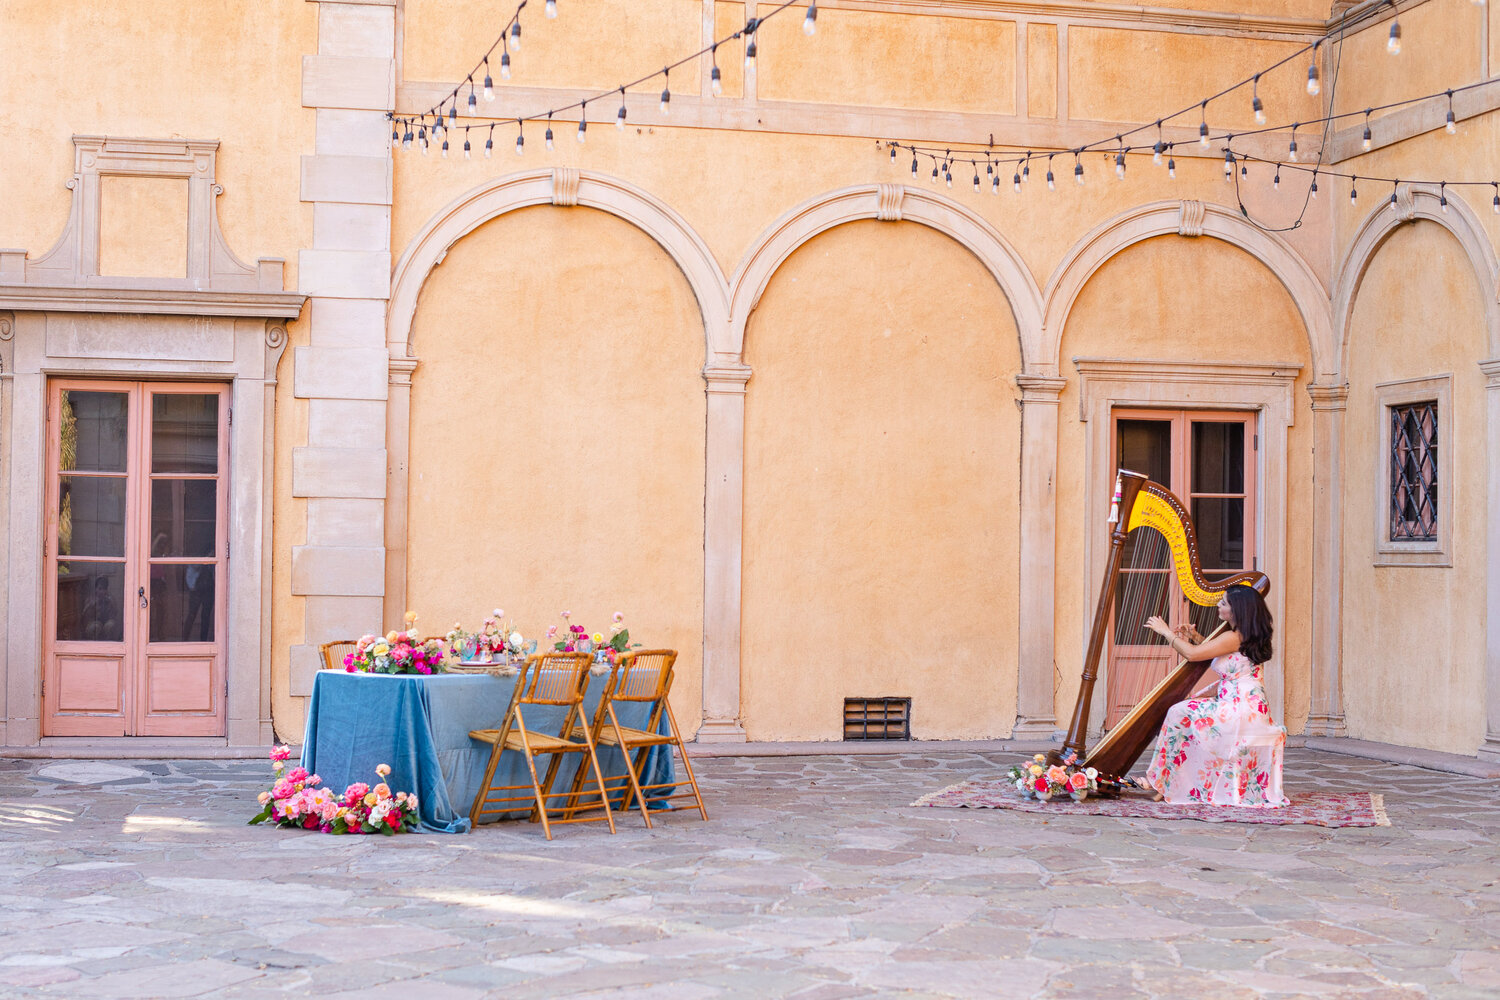 h & l lovely creations bespoke weddings southern california colourful 00025